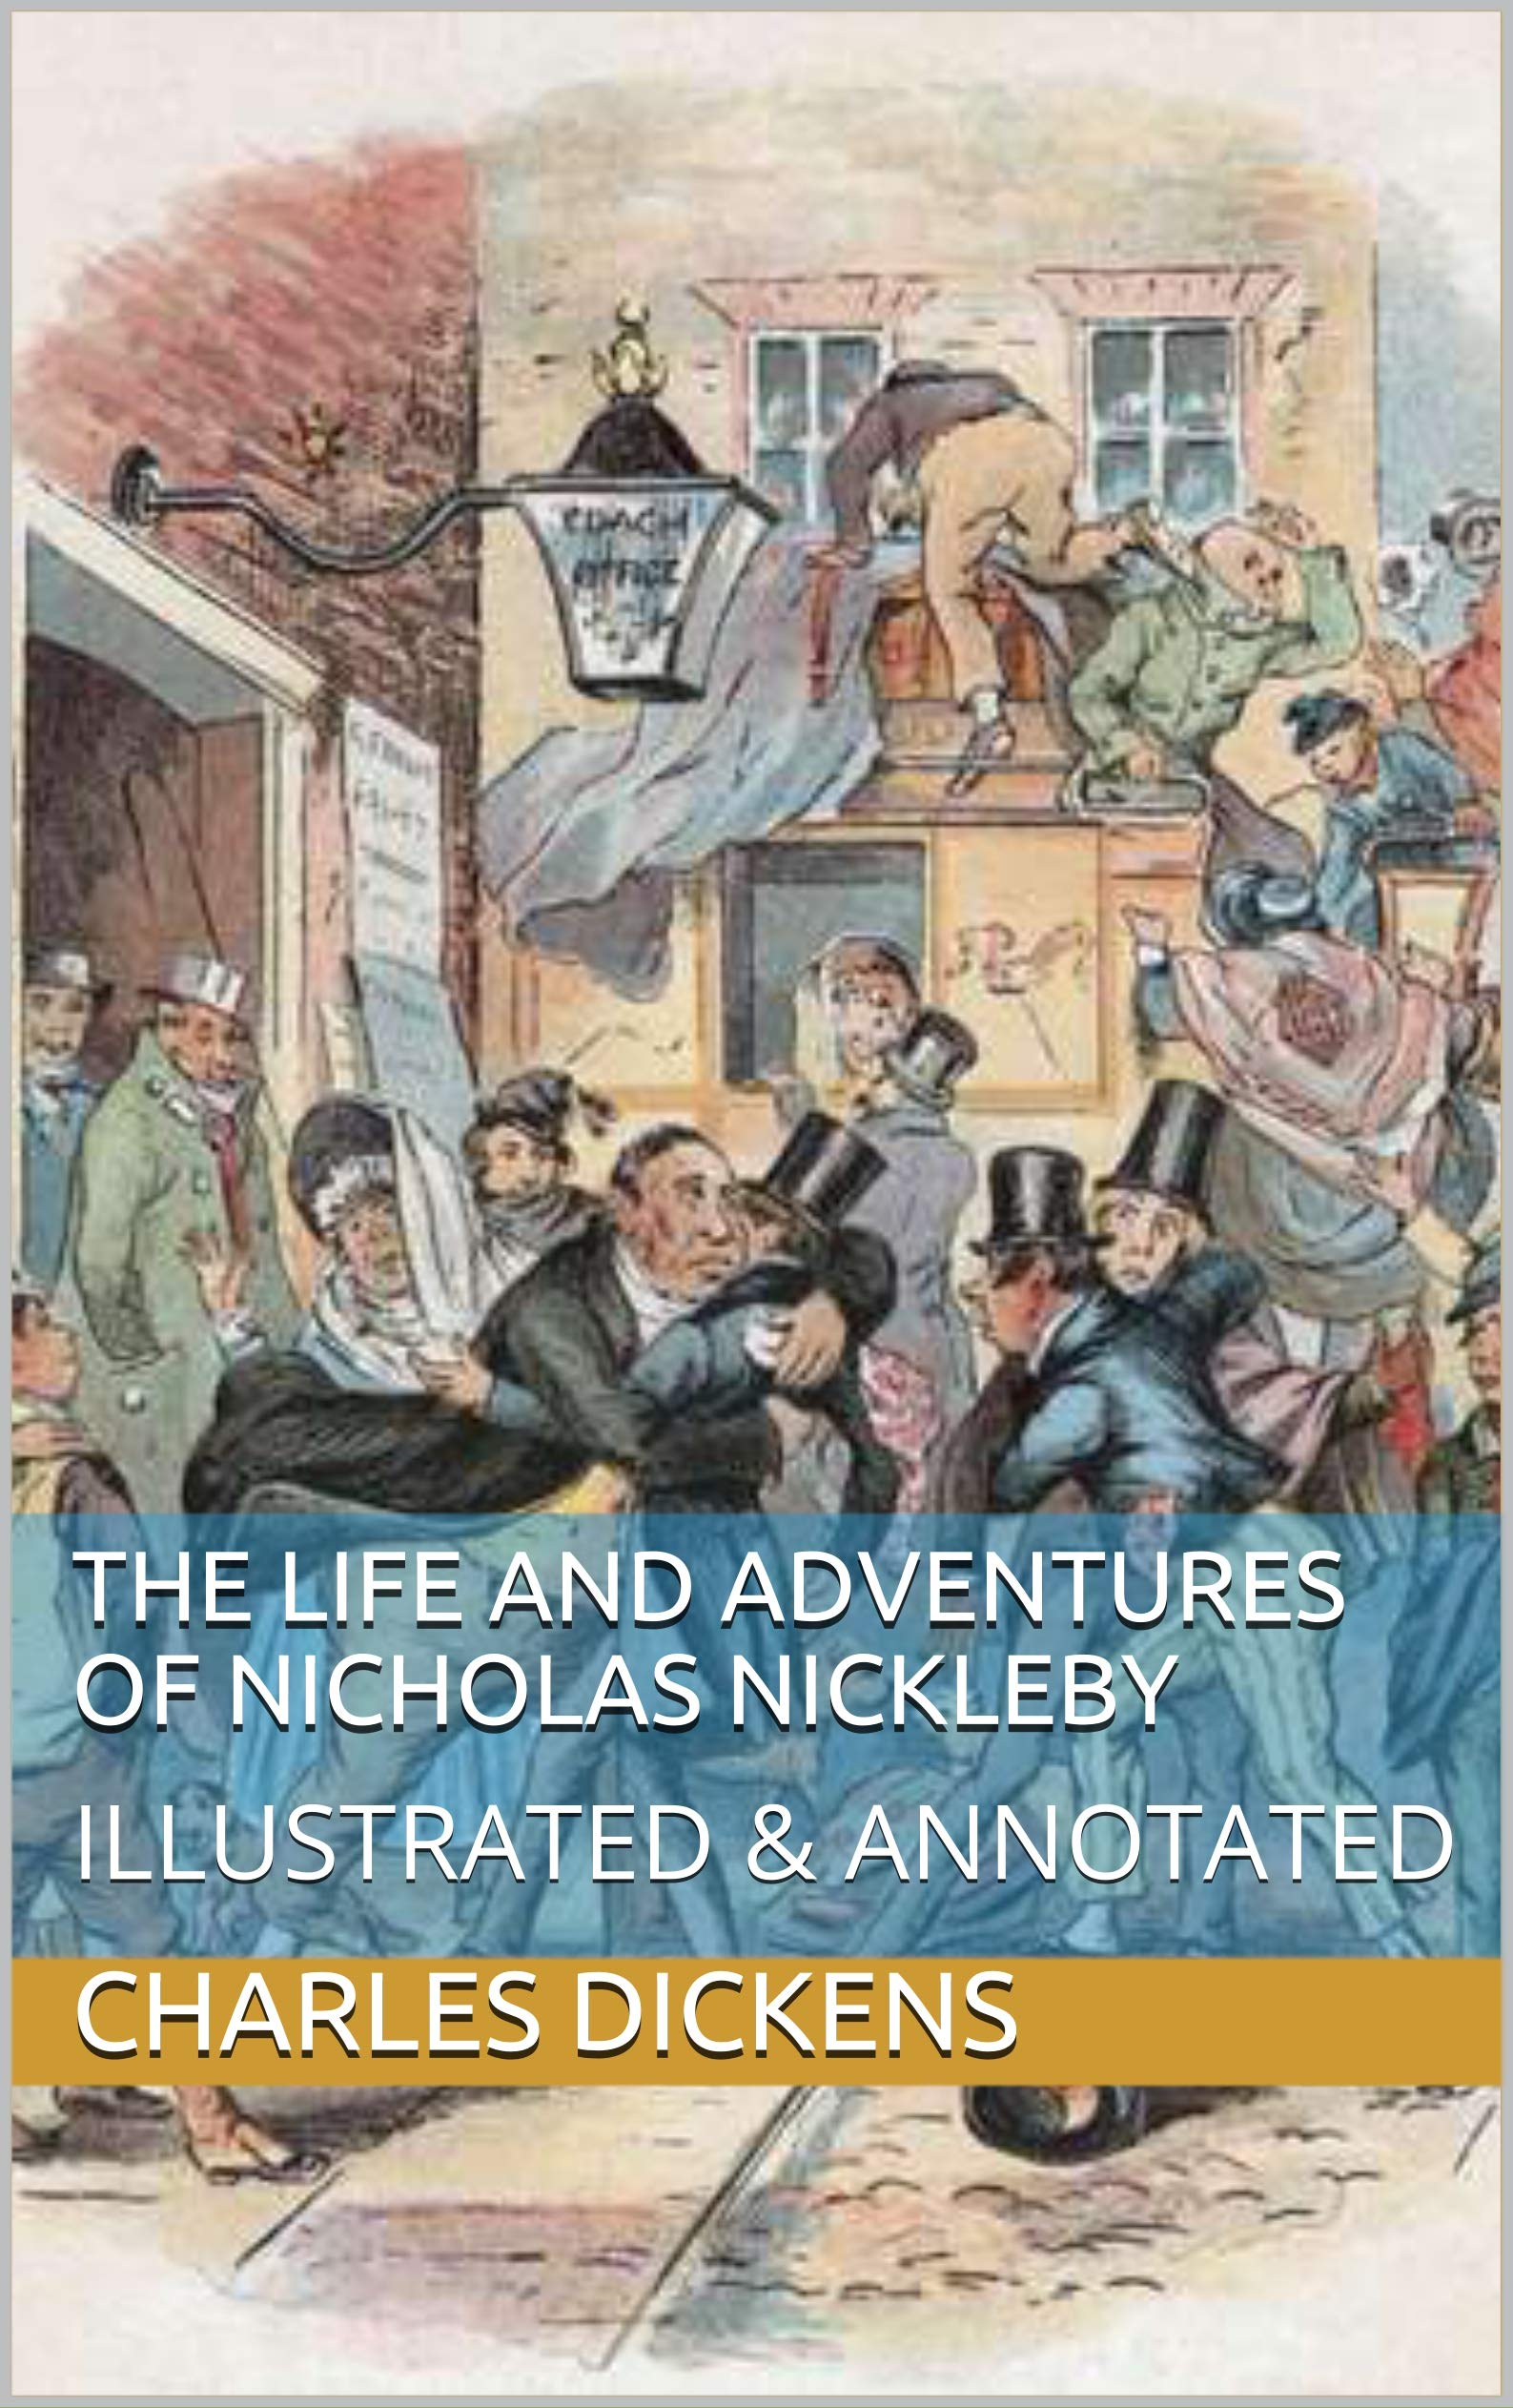 THE LIFE AND ADVENTURES OF NICHOLAS NICKLEBY: ILLUSTRATED & ANNOTATED